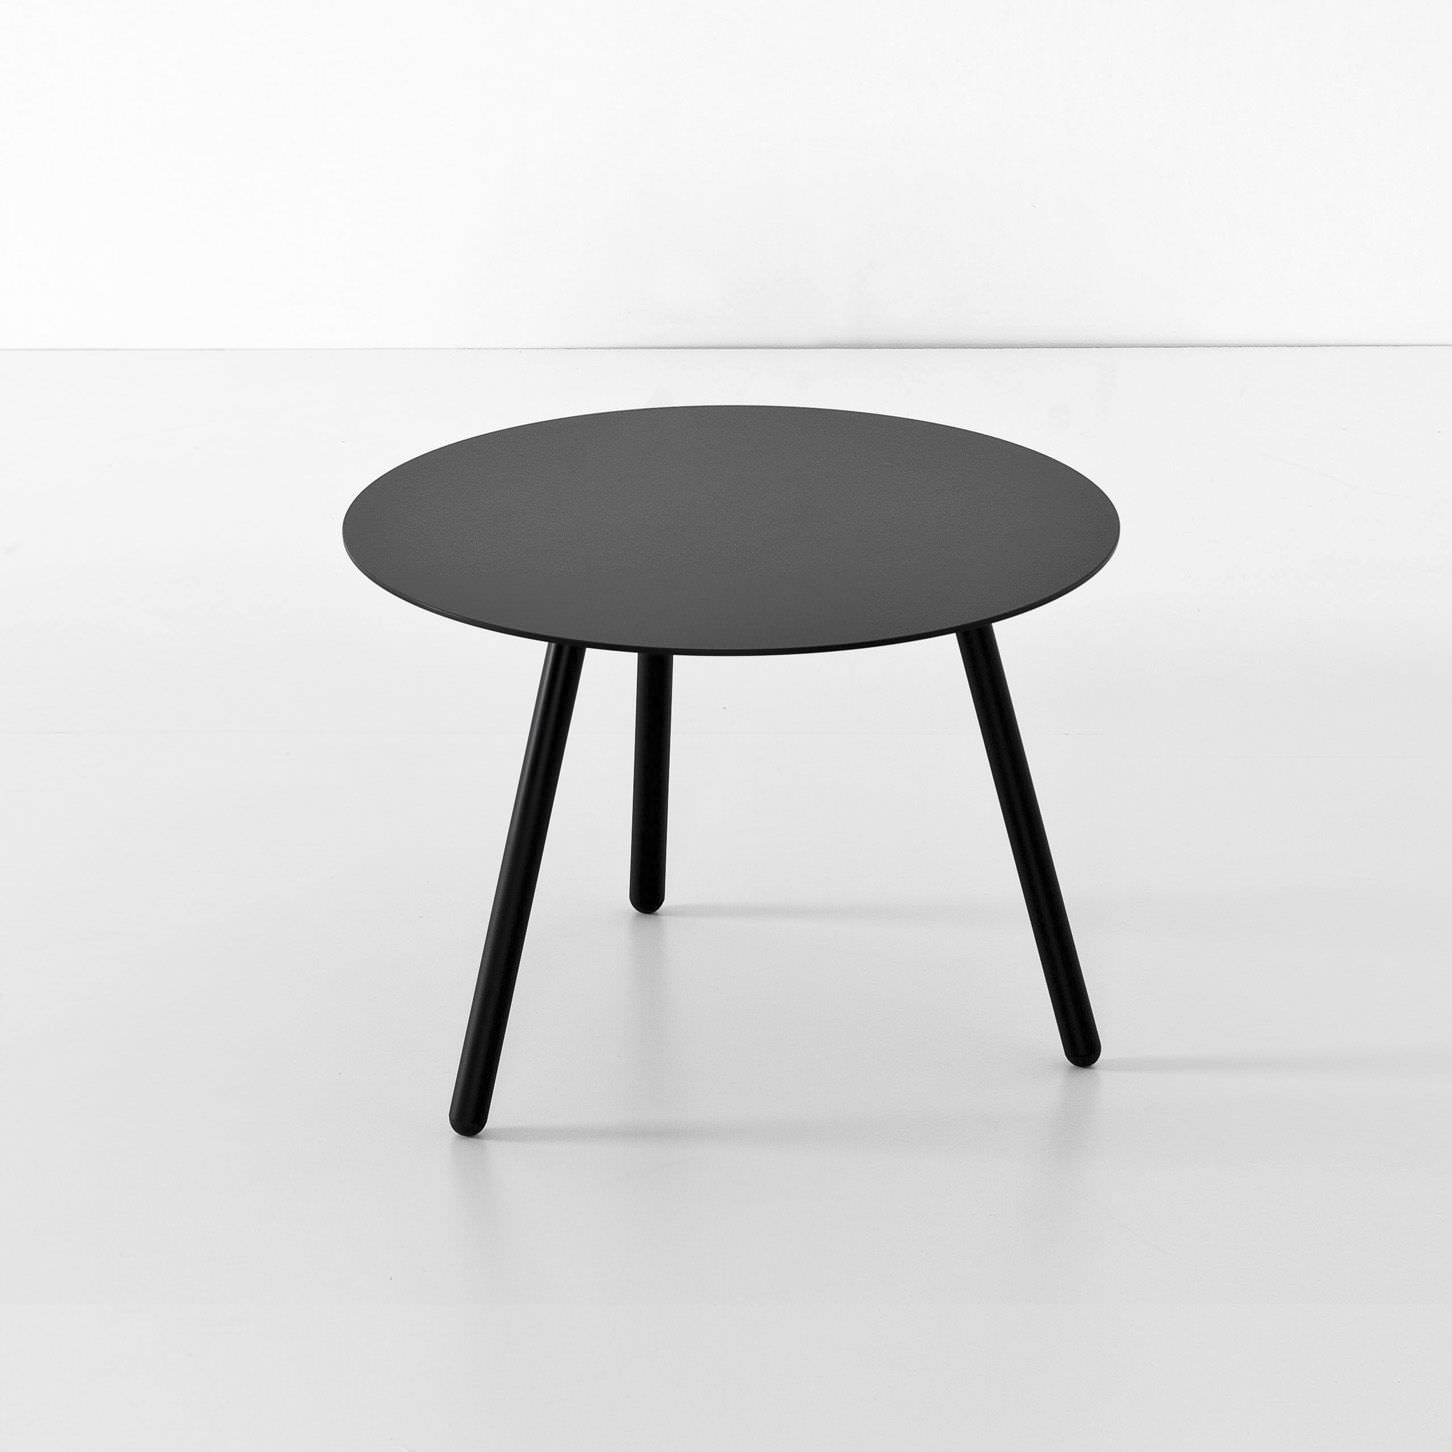 Contemporary coffee table wooden round BCN LOW by Harry